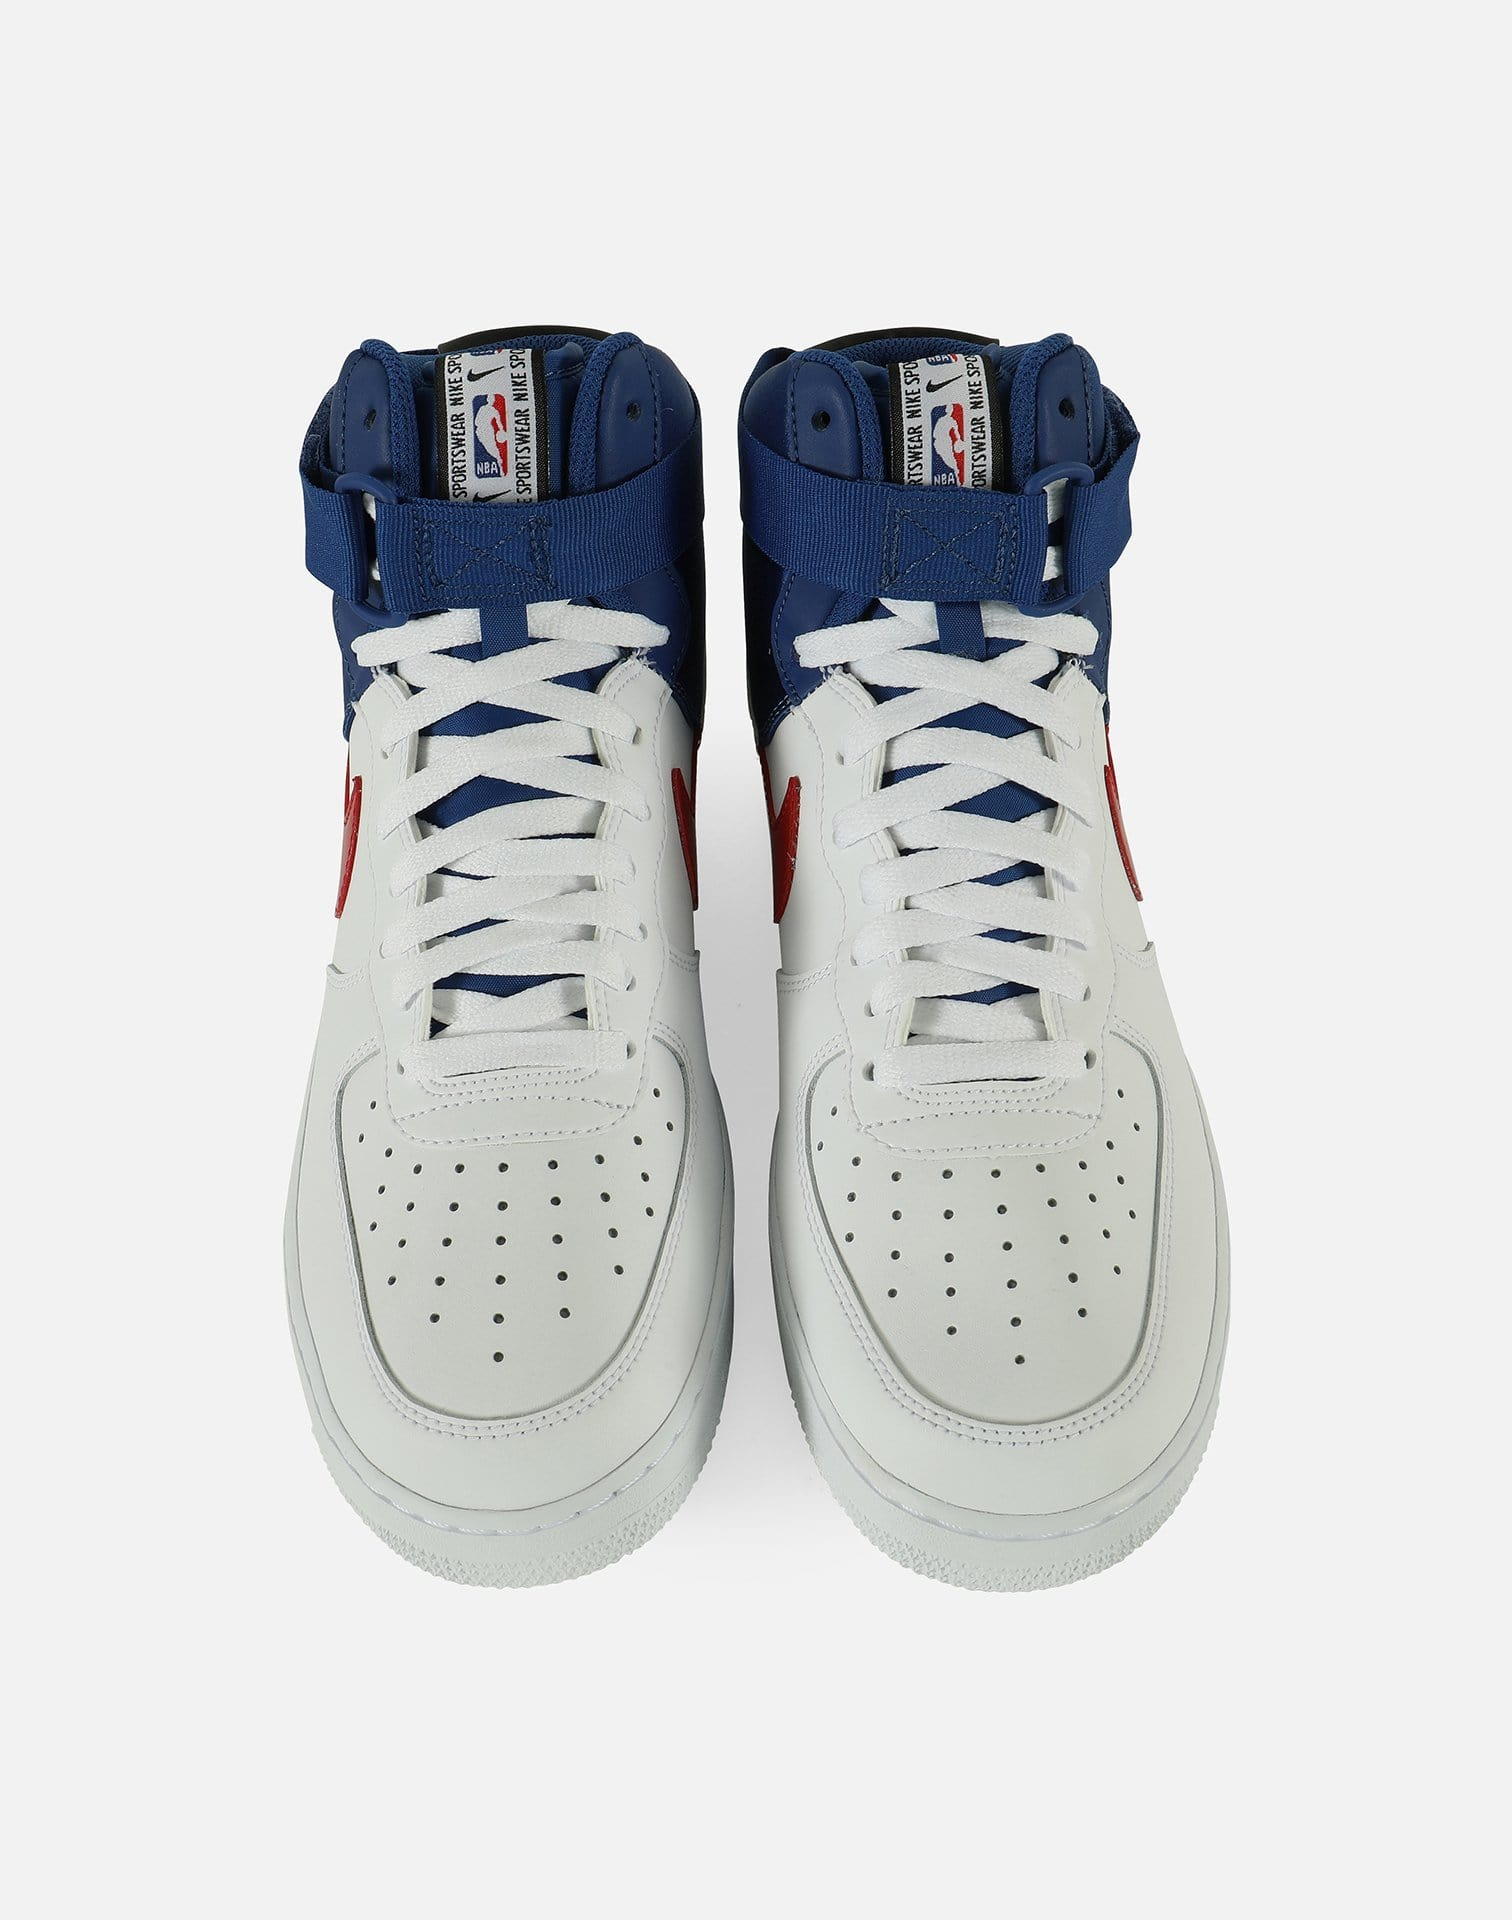 Nike Men's Air Force 1 '07 High 'NBA'